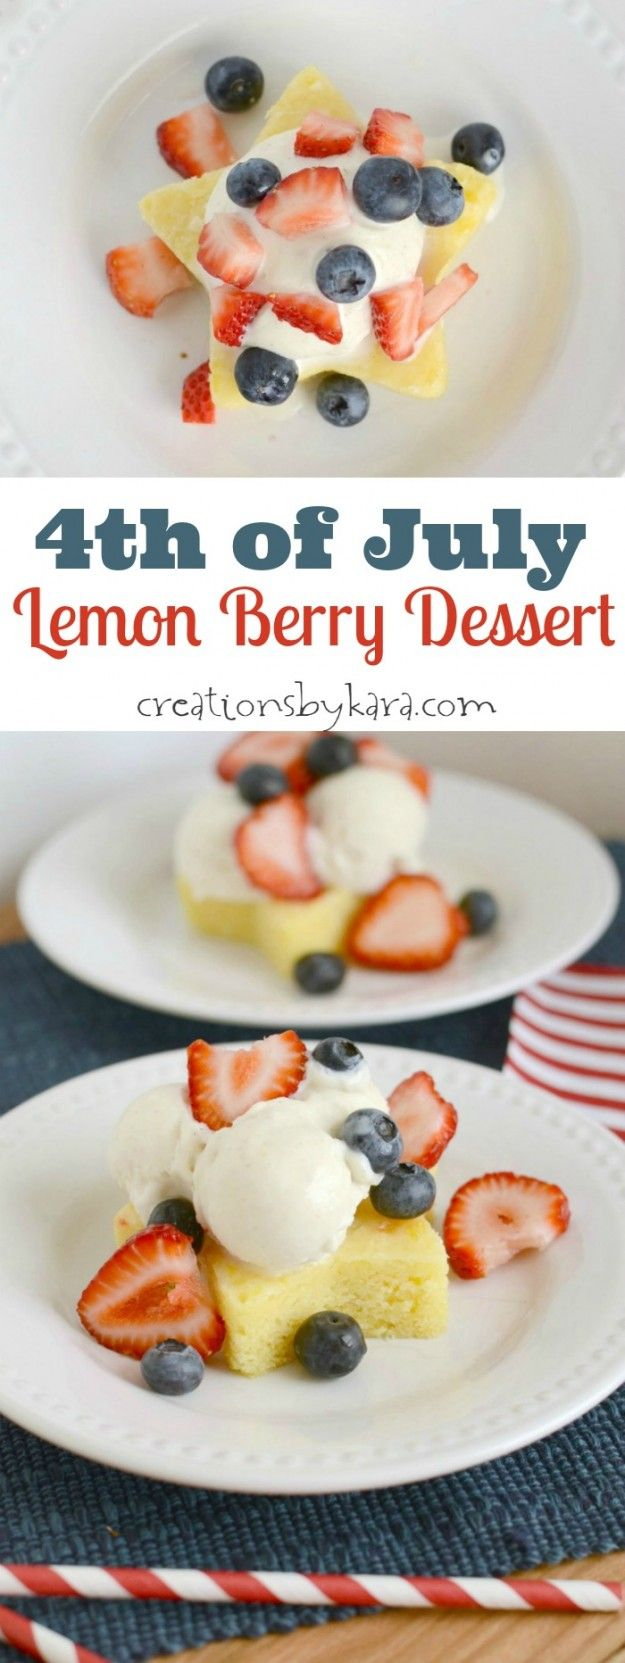 This Lemon Berry Dessert is perfect for the 4th of July!